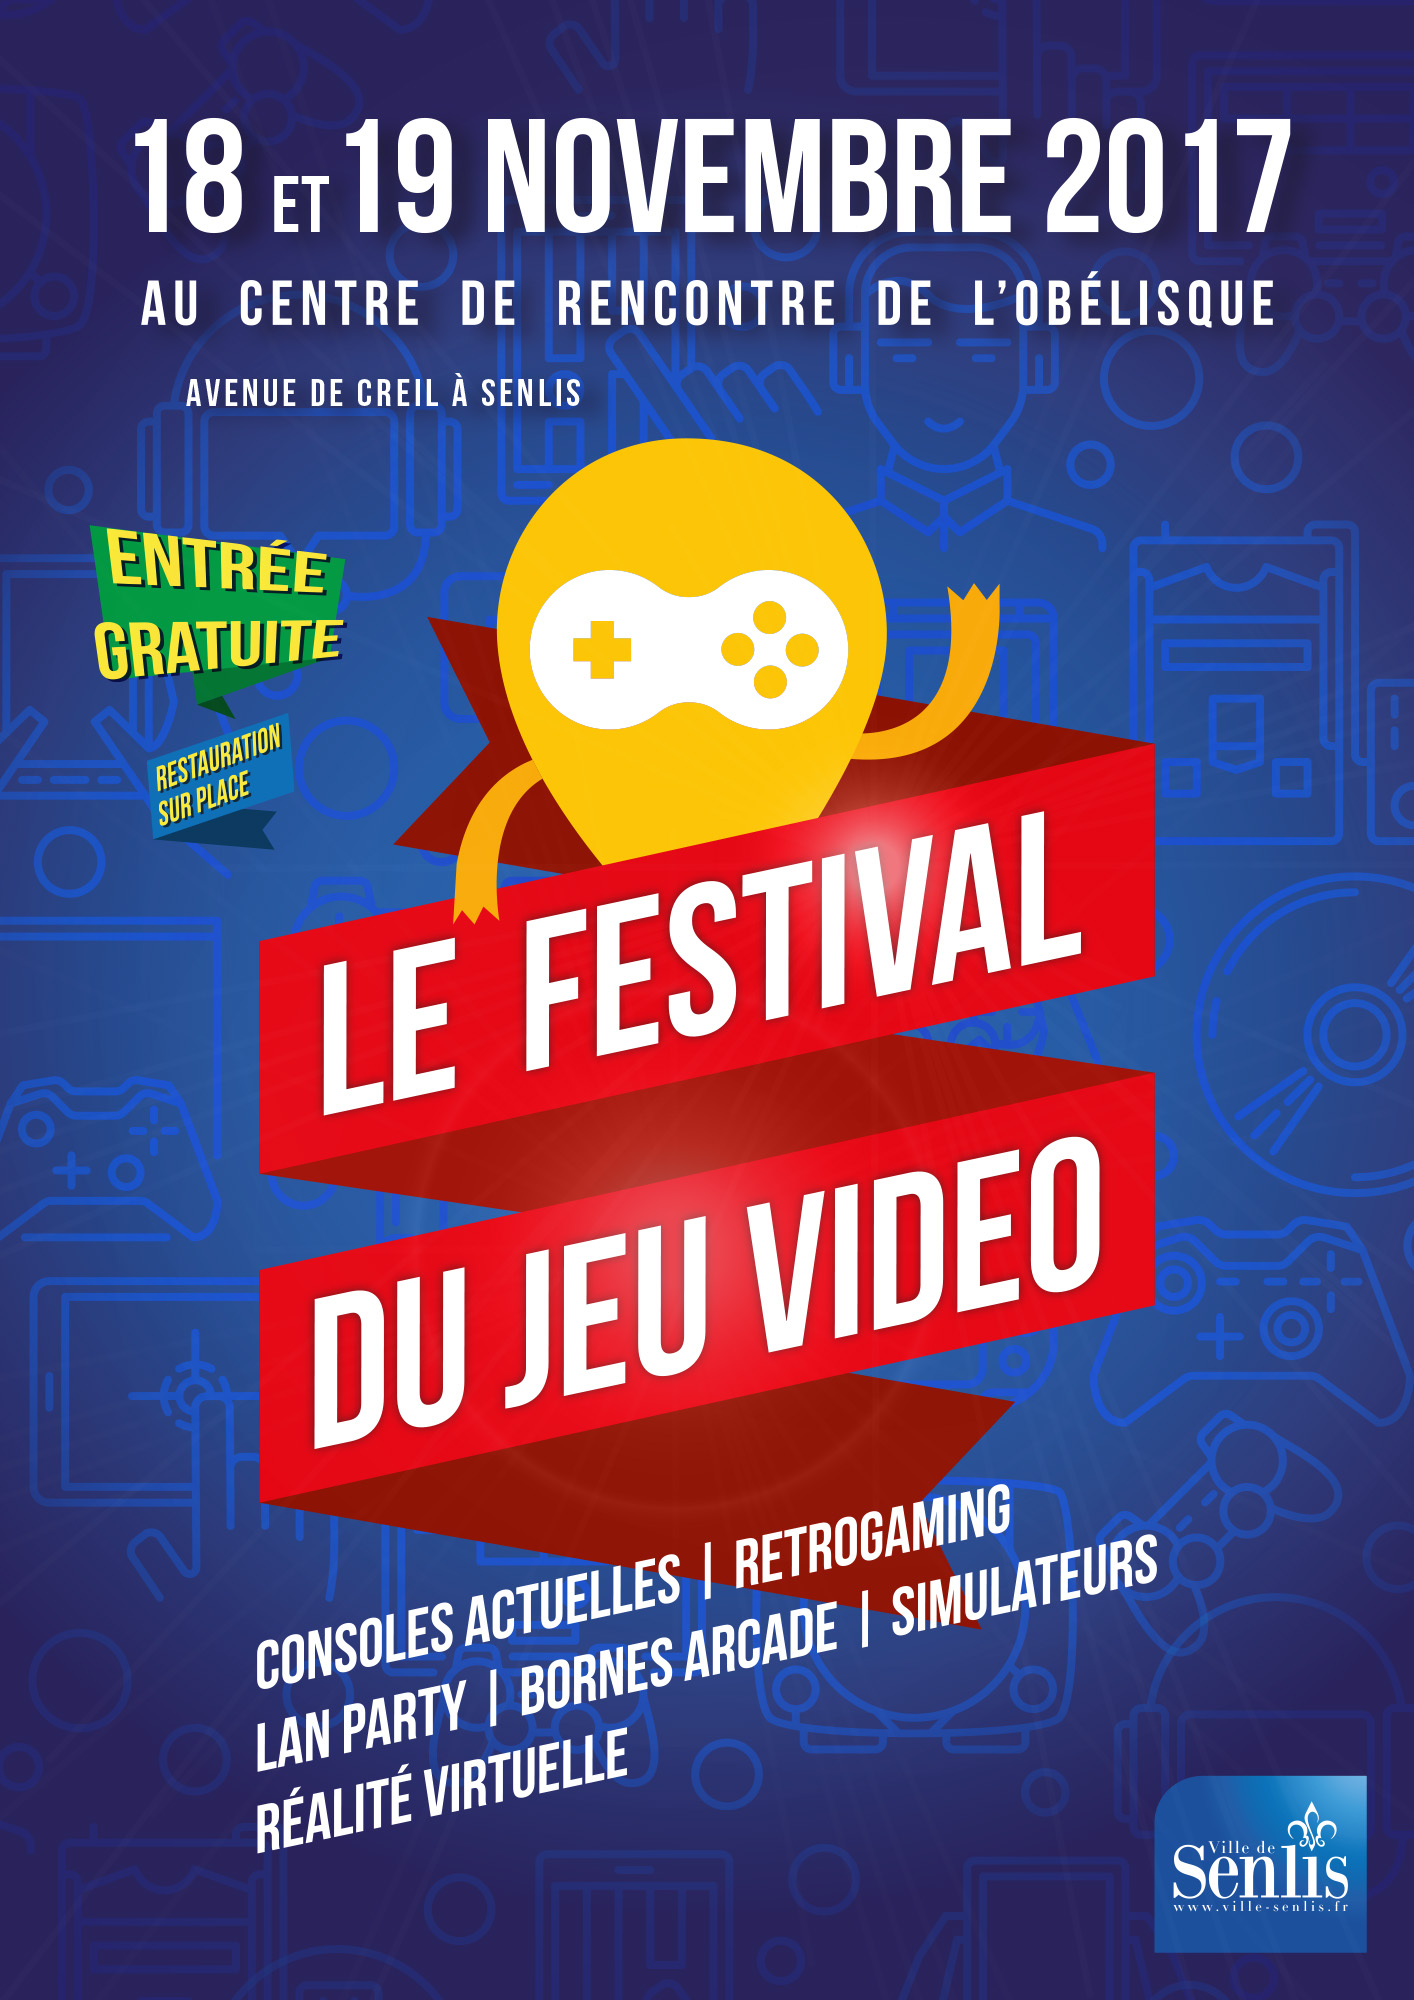 Festival du Jeu video 2017 - flyer